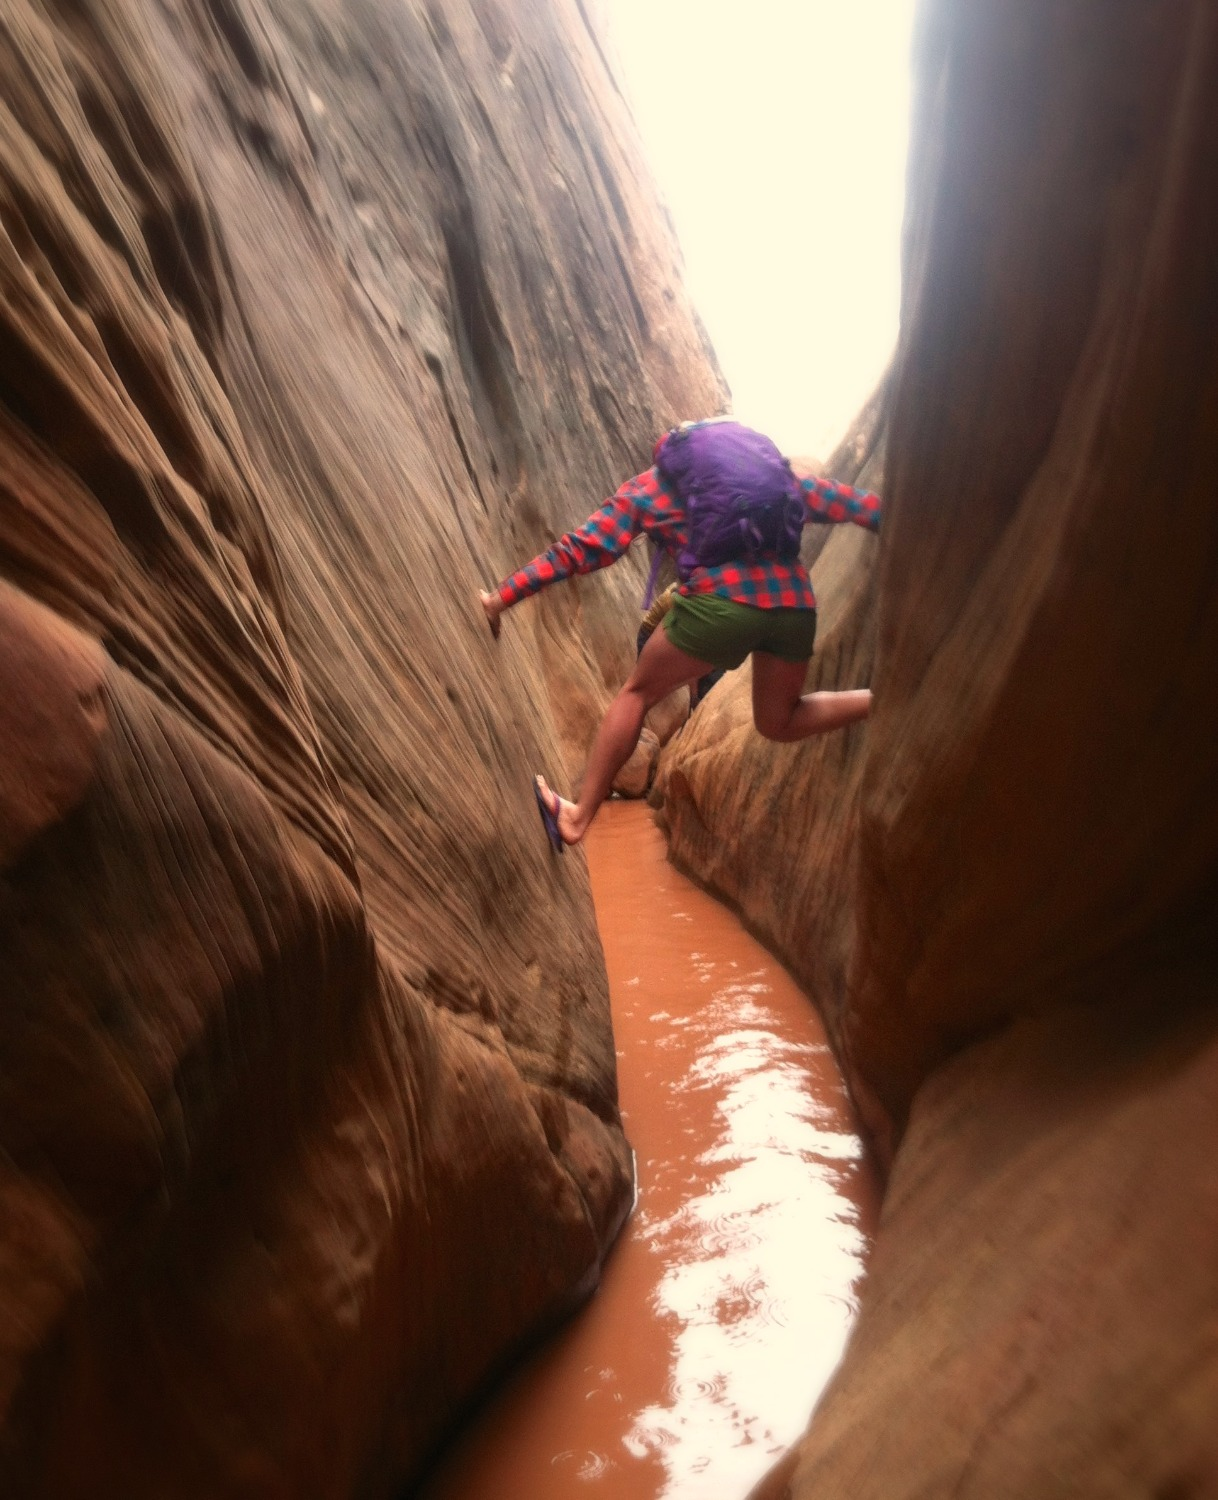 Half-day canyoneering tours